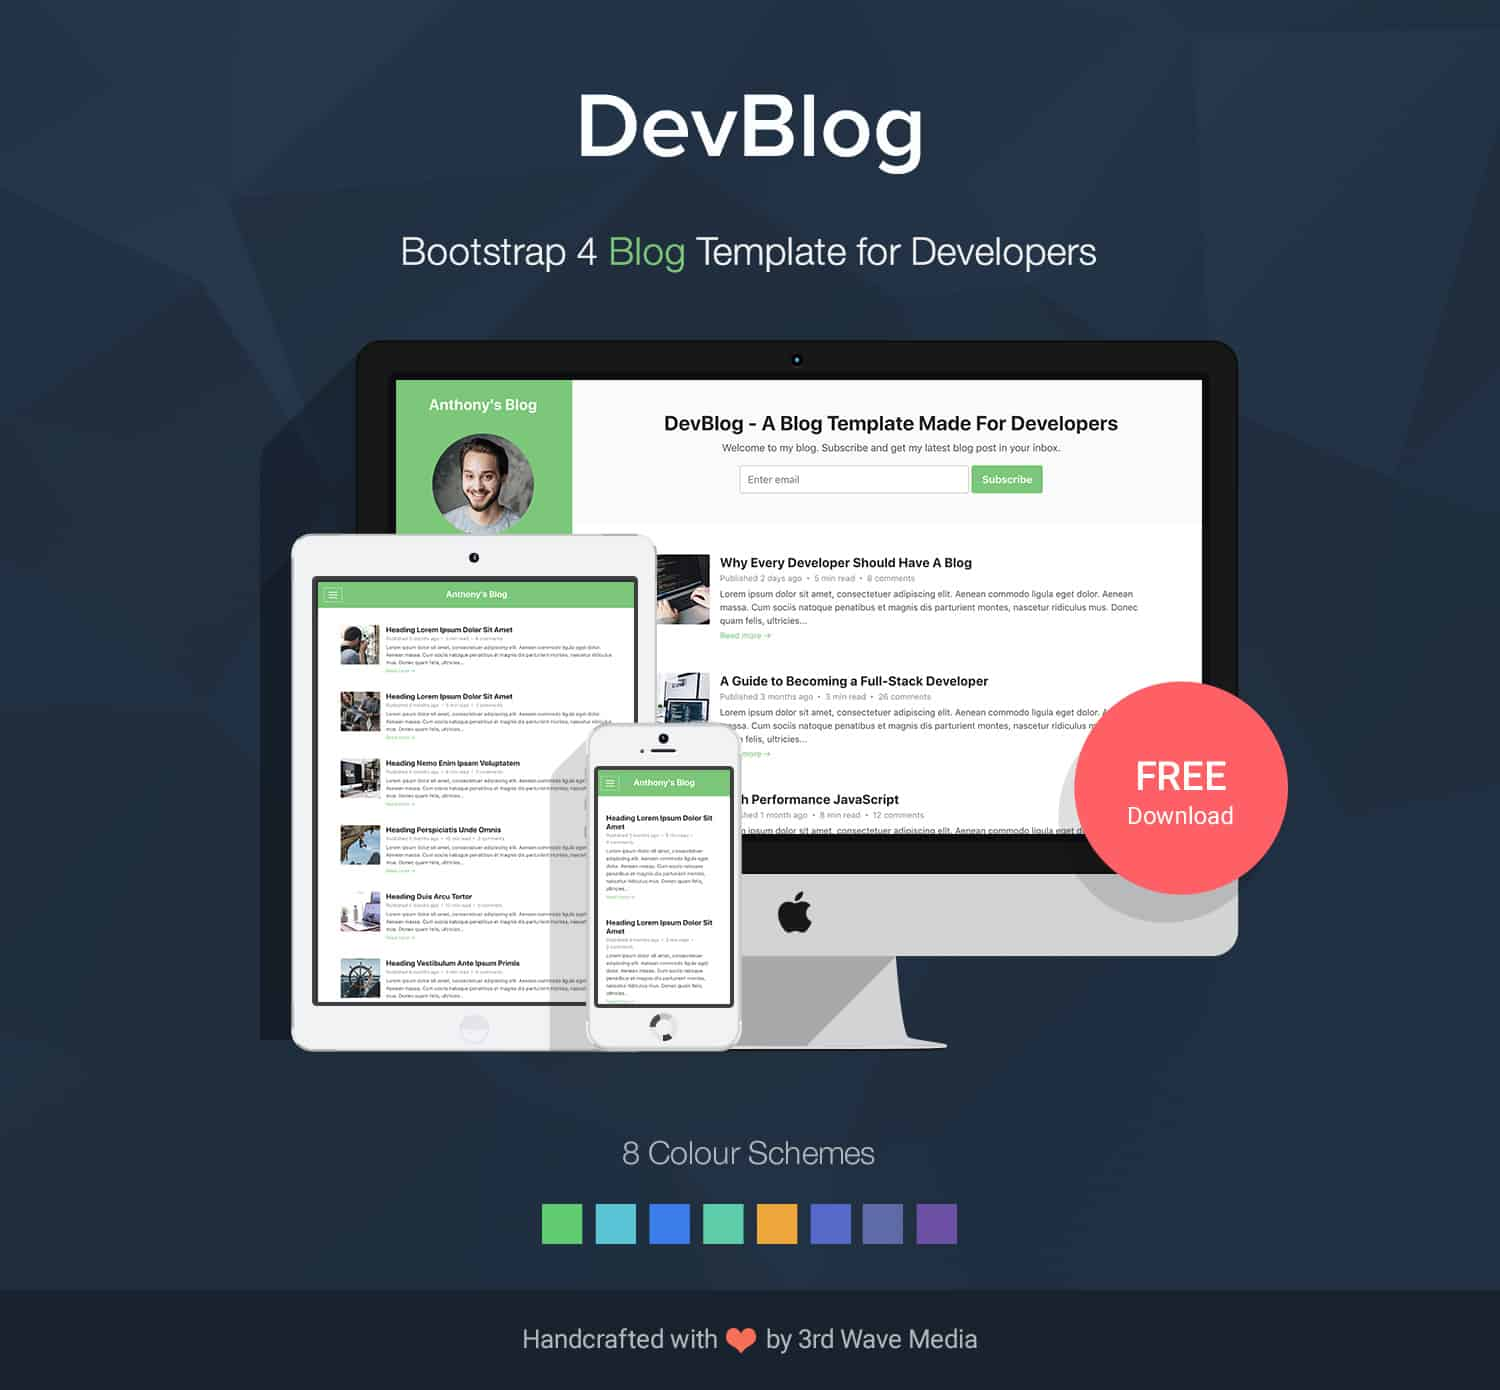 Bootstrap 4 Blog Template for Developers